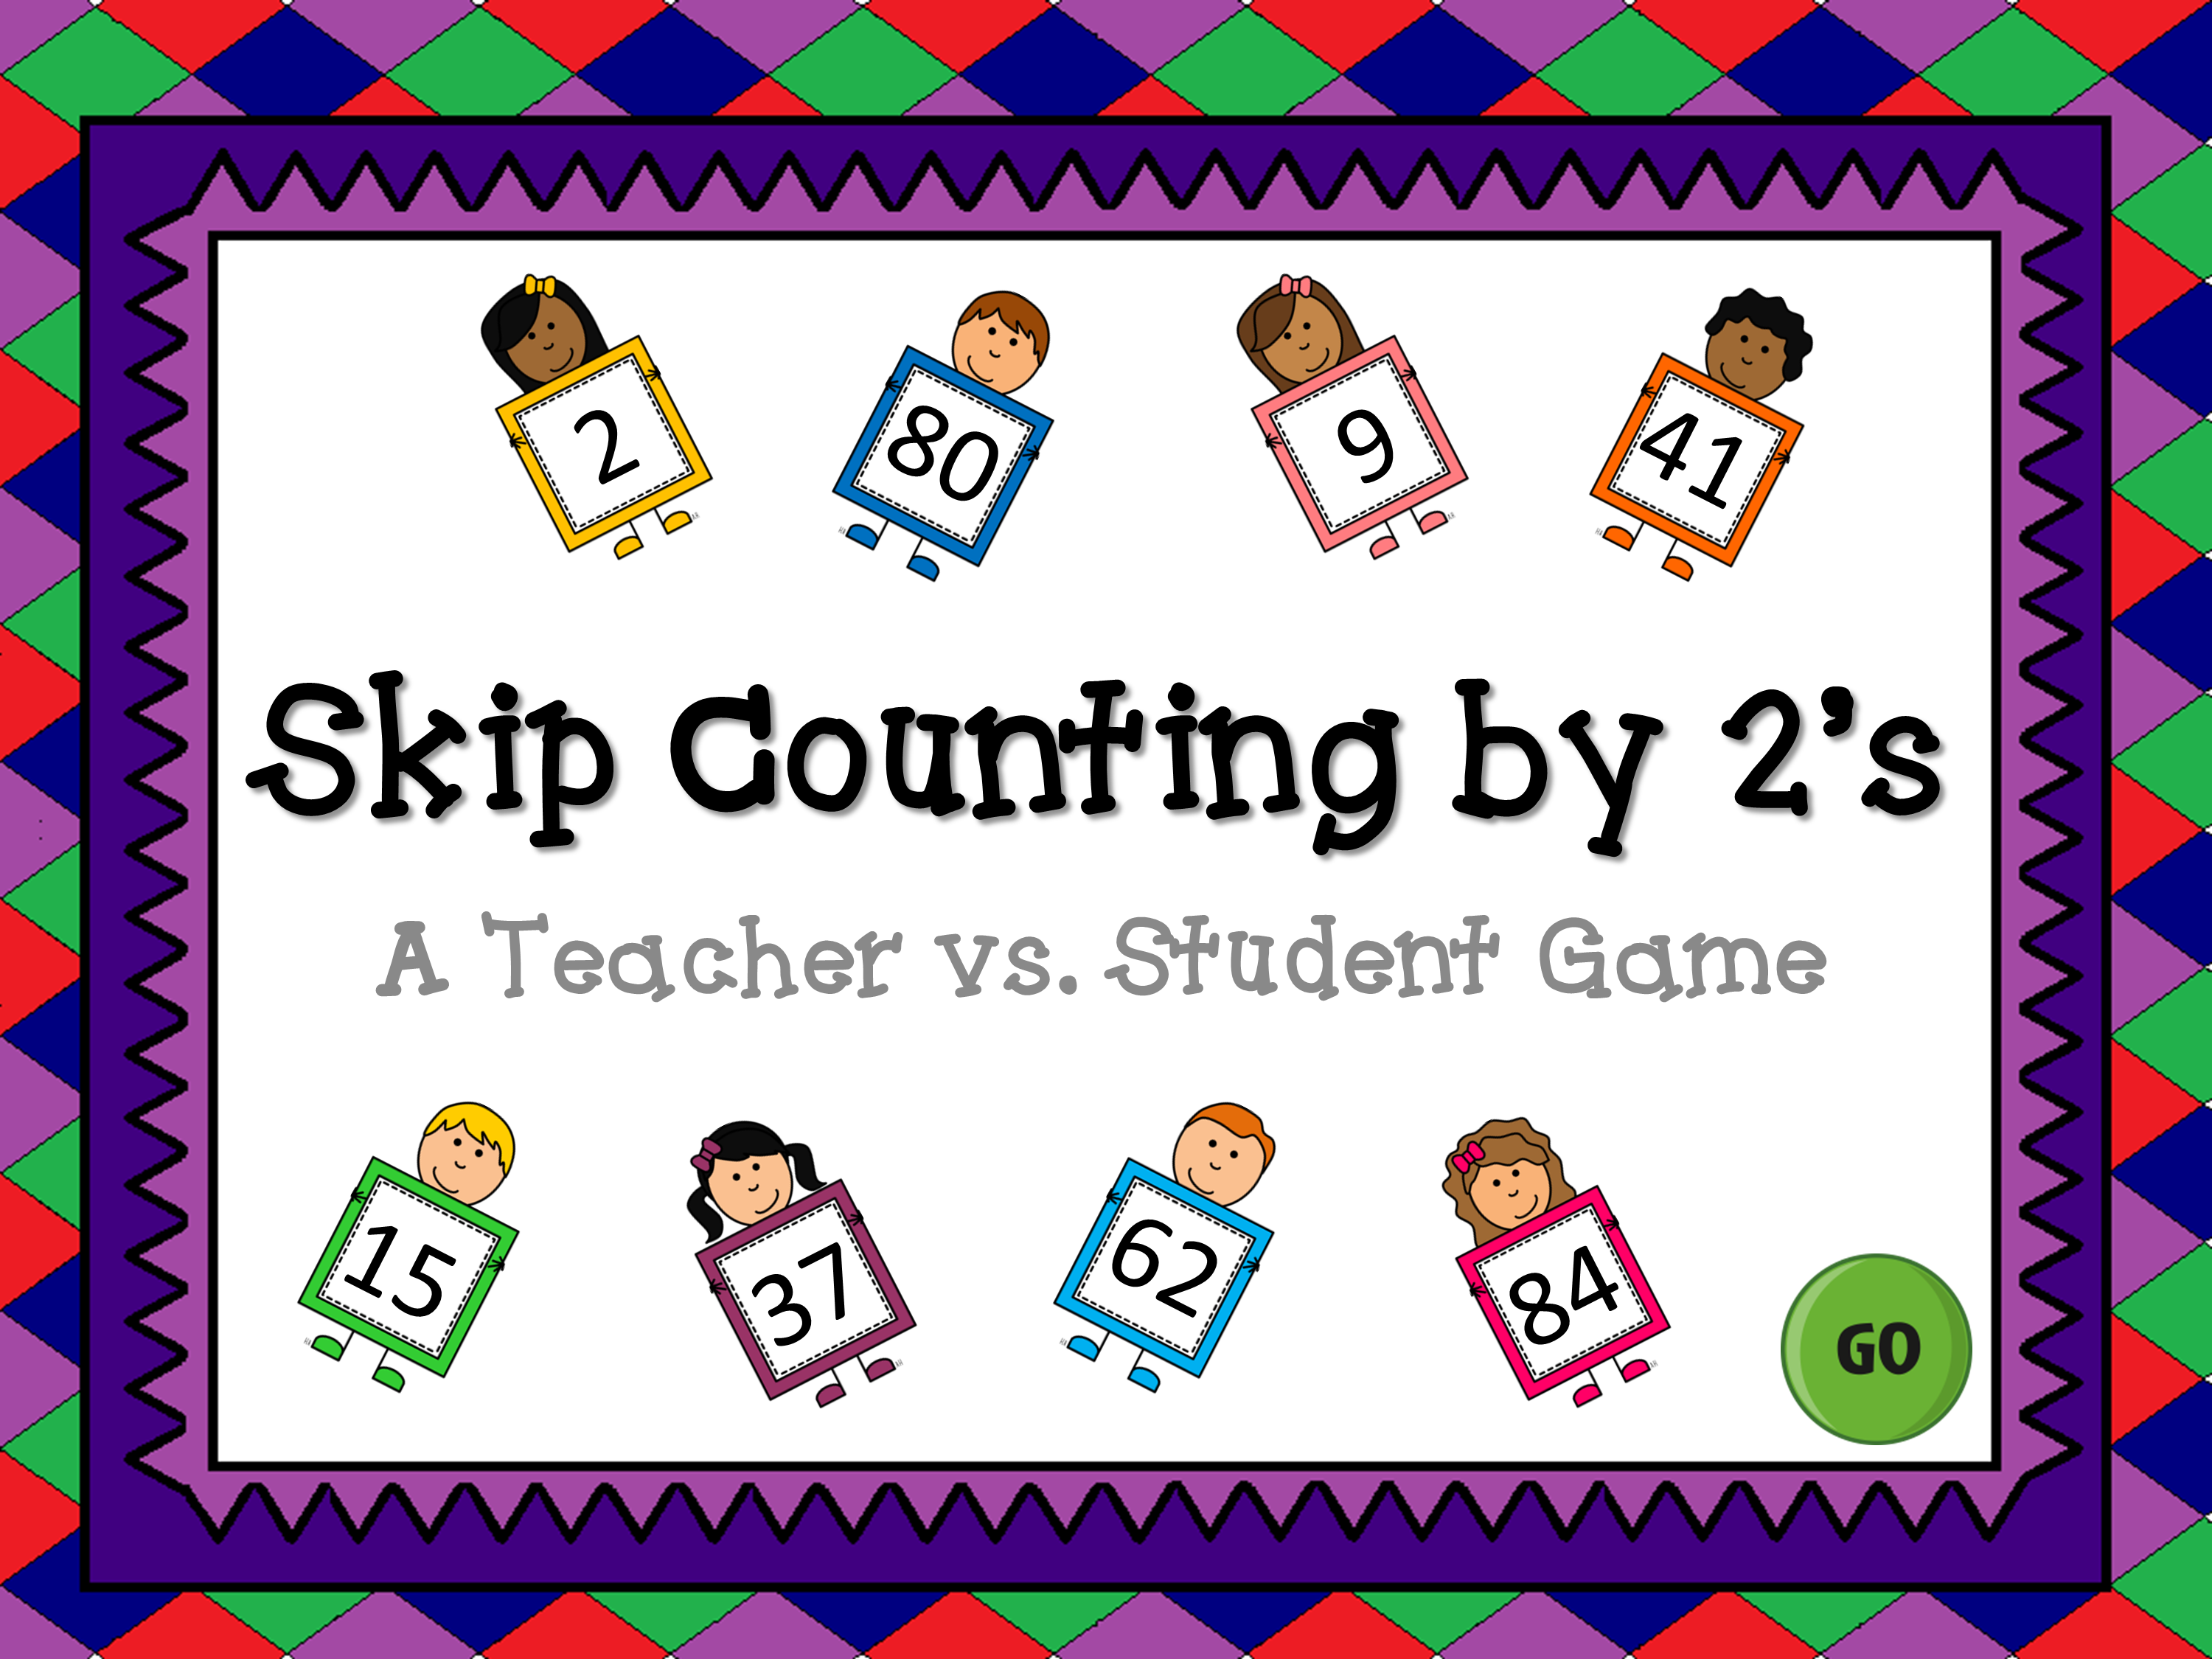 Skip Counting by 2's Teacher vs Student Game